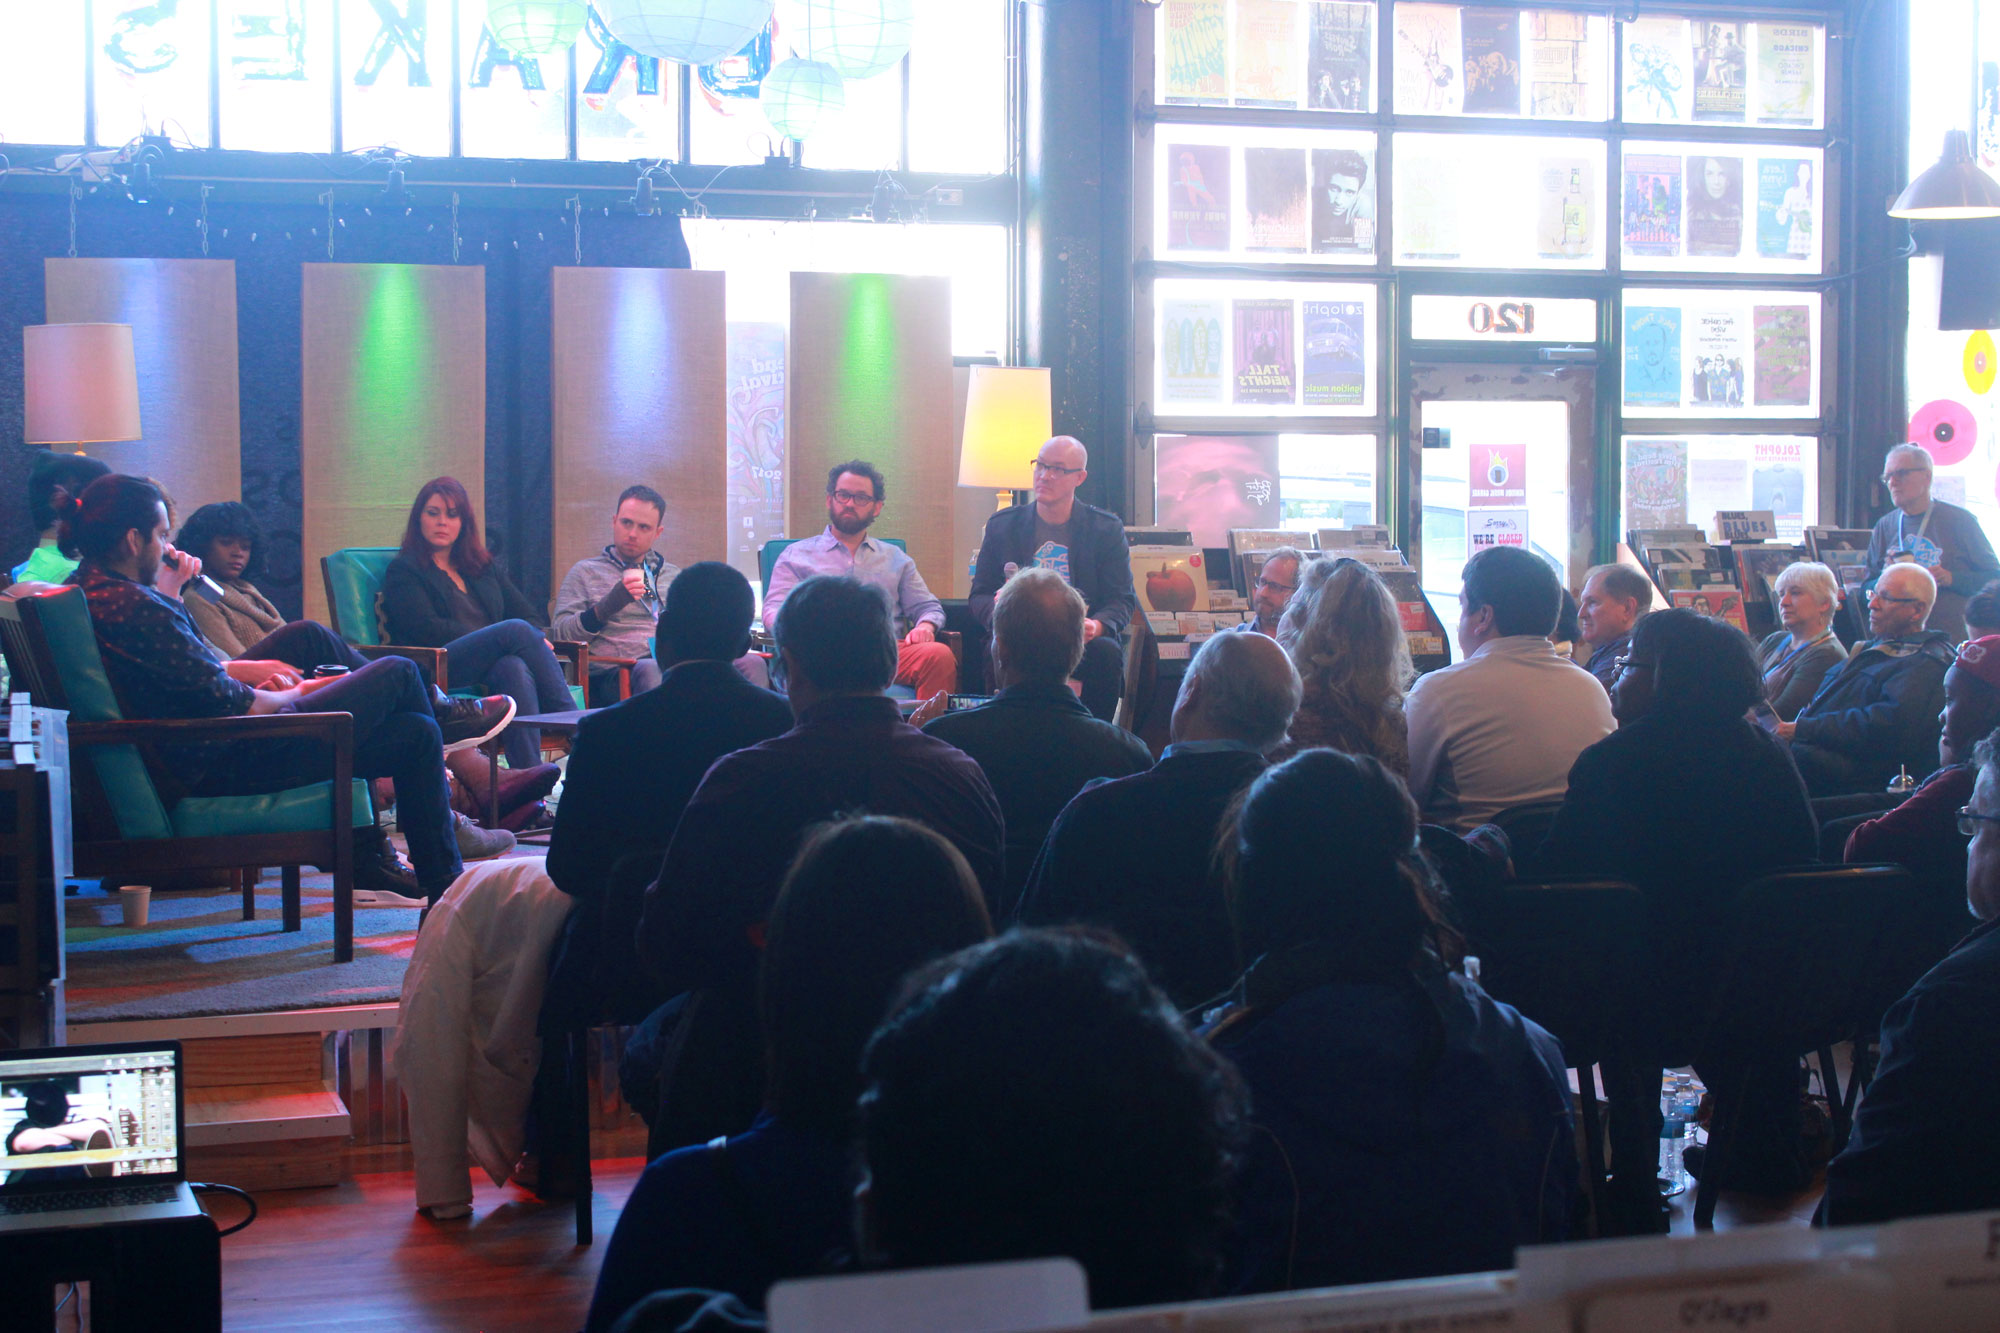 Coffee Talk with filmmakers at Ignition Music